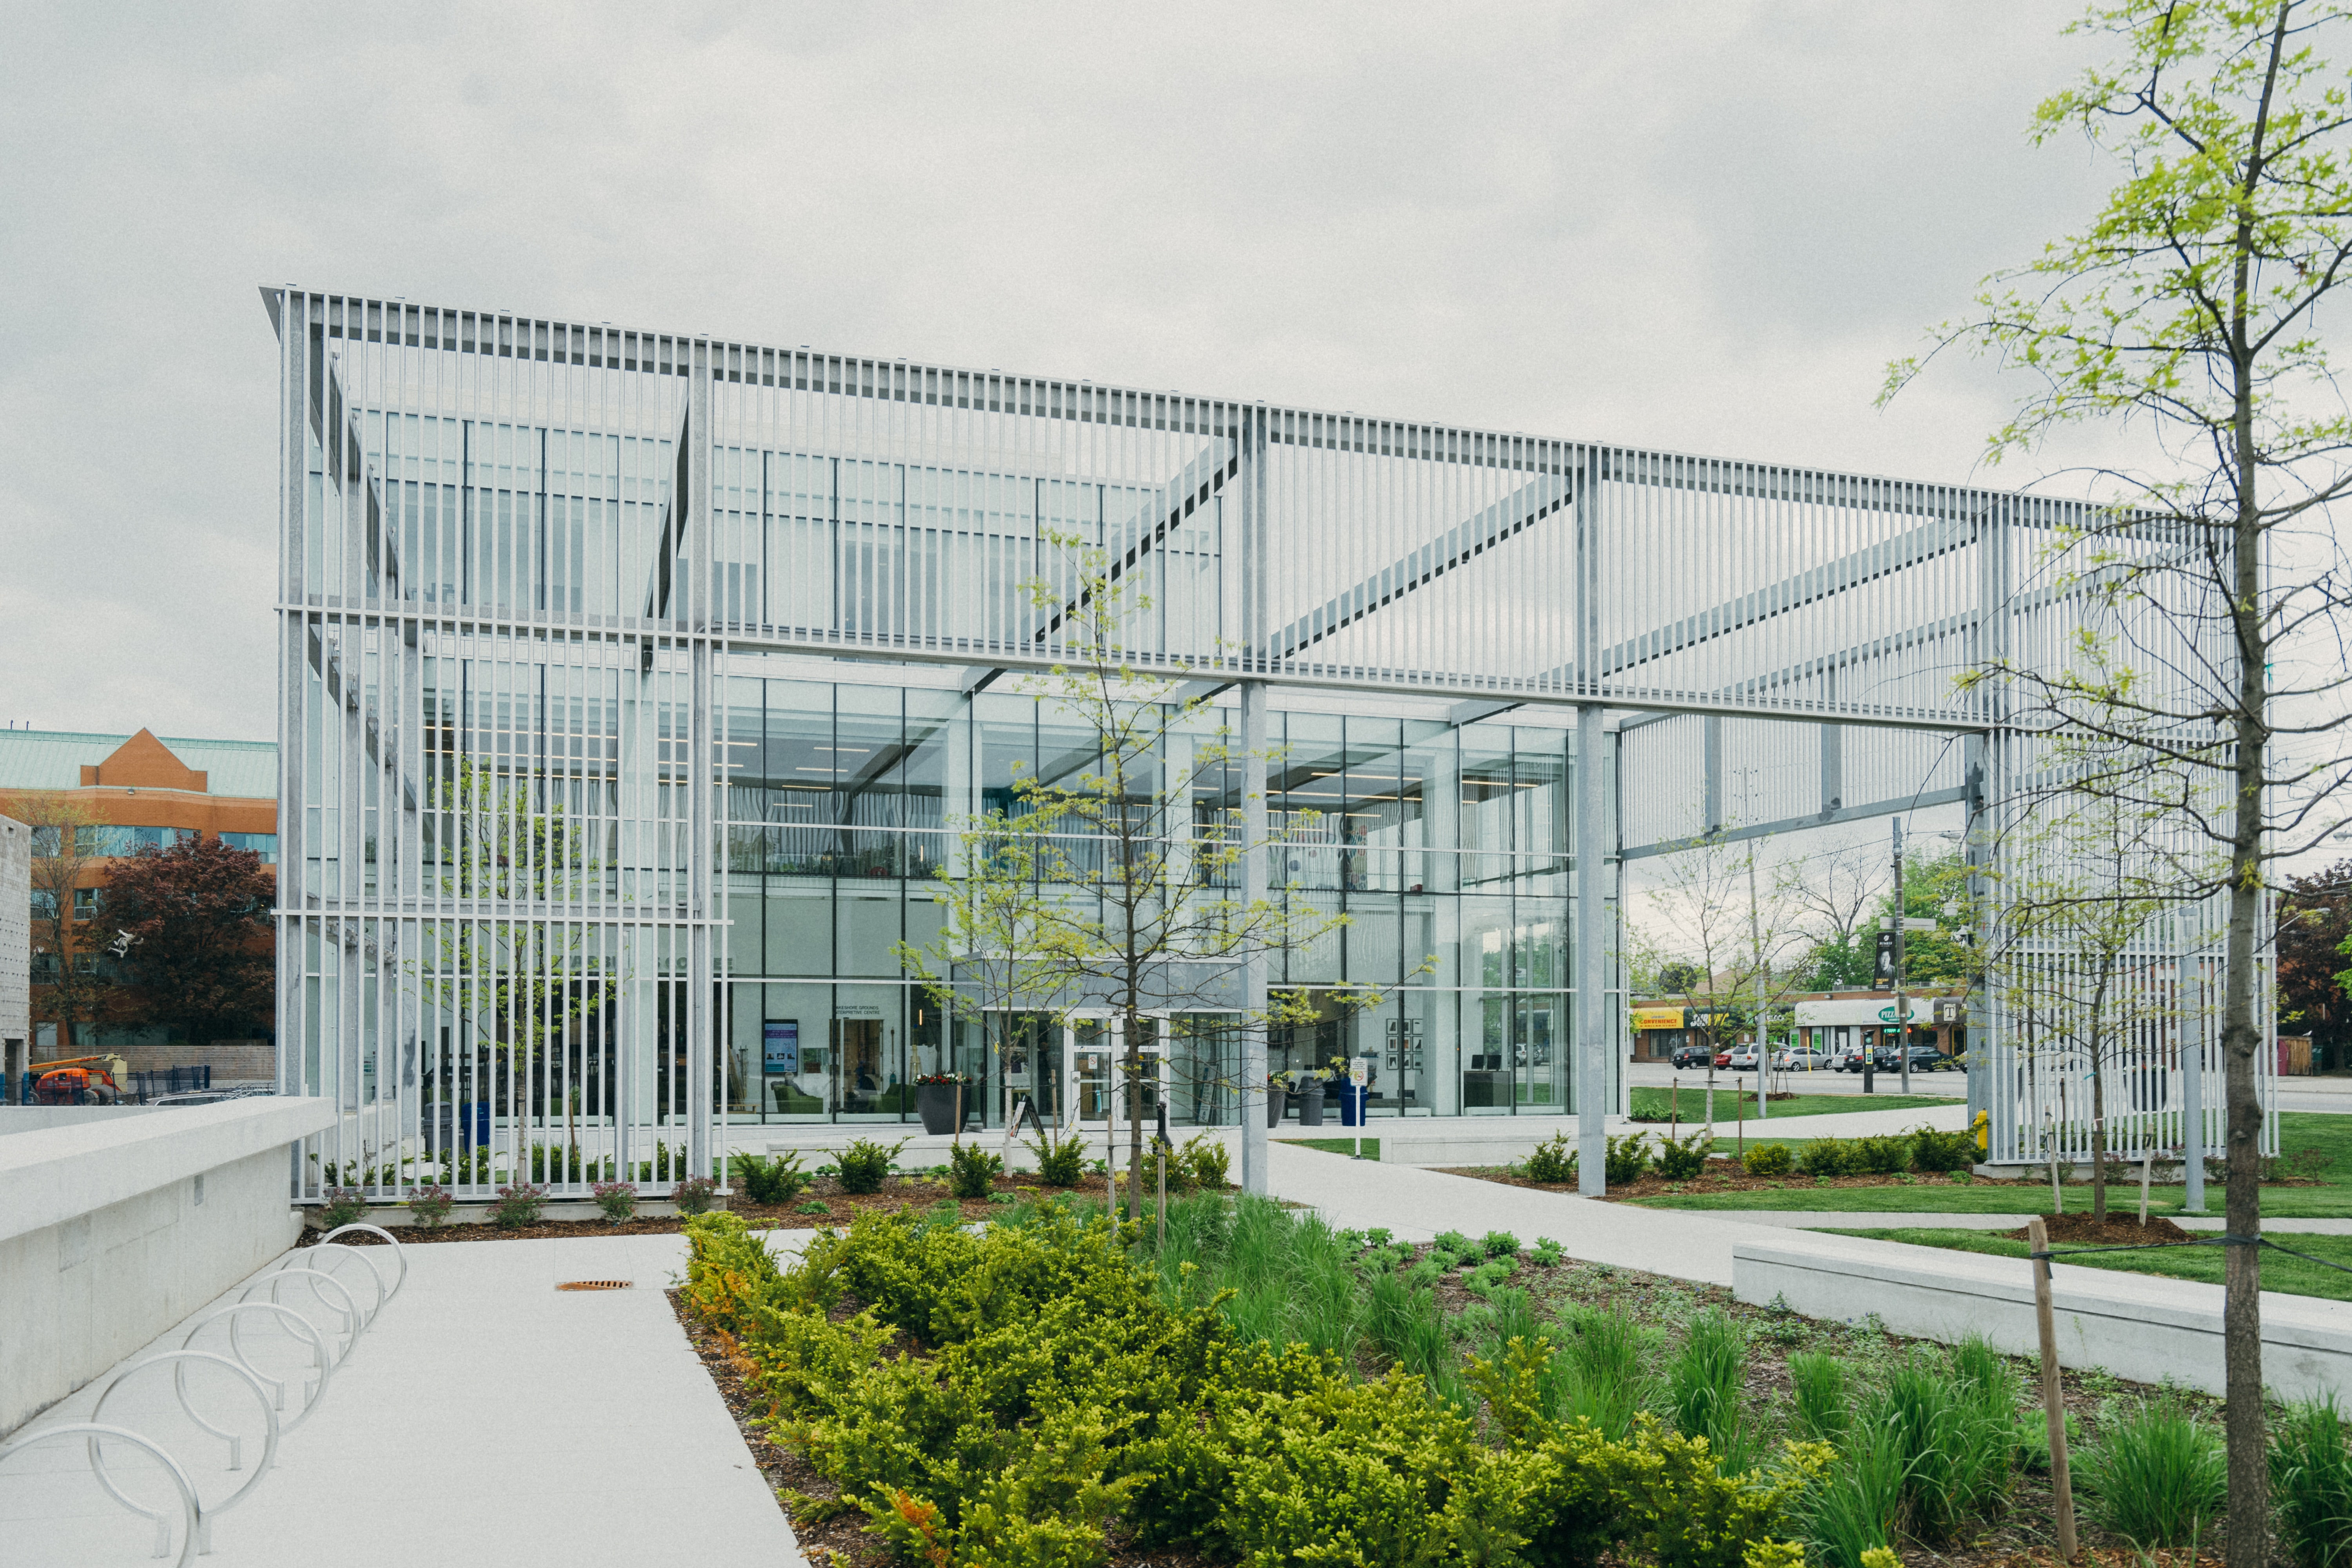 A flower bed near a metal structure with a glass building facade at the back